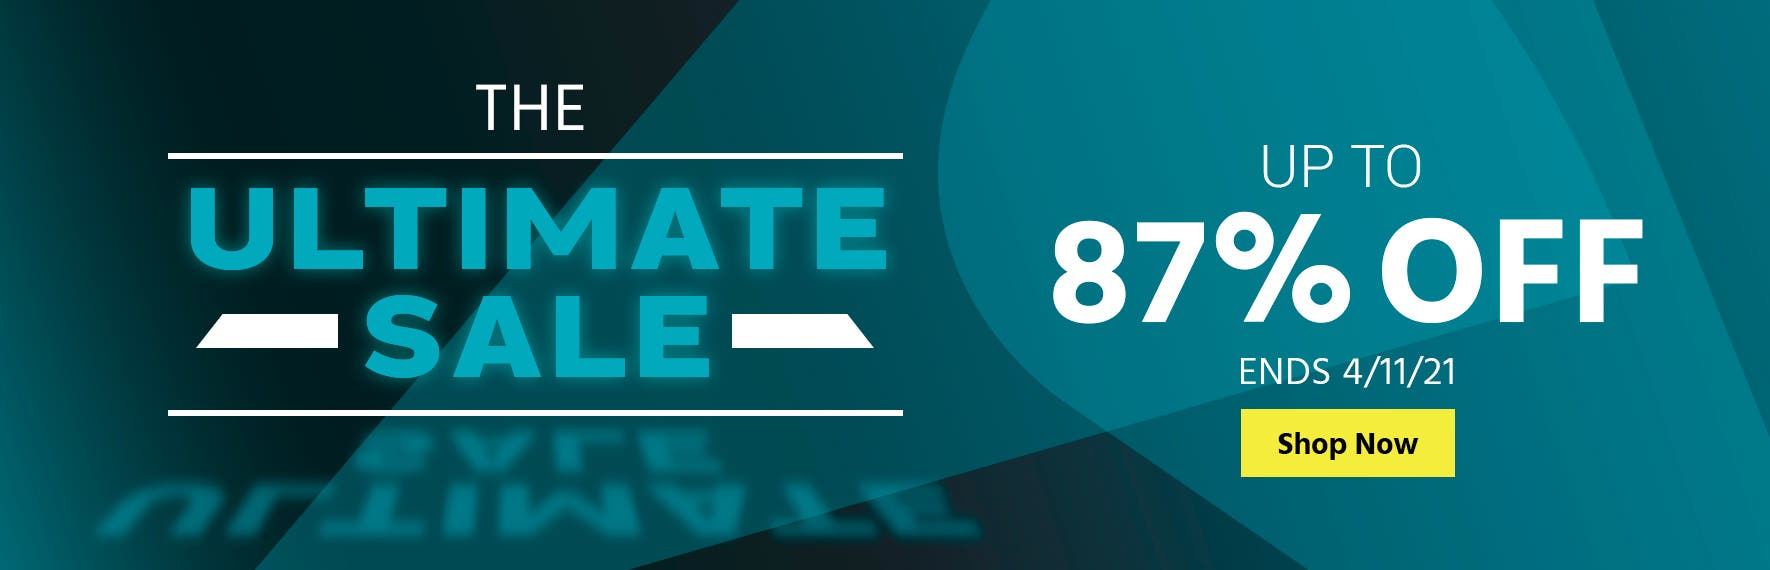 The Ultimate Sale Up to 87% off Ends 4/11/21 Shop Now>